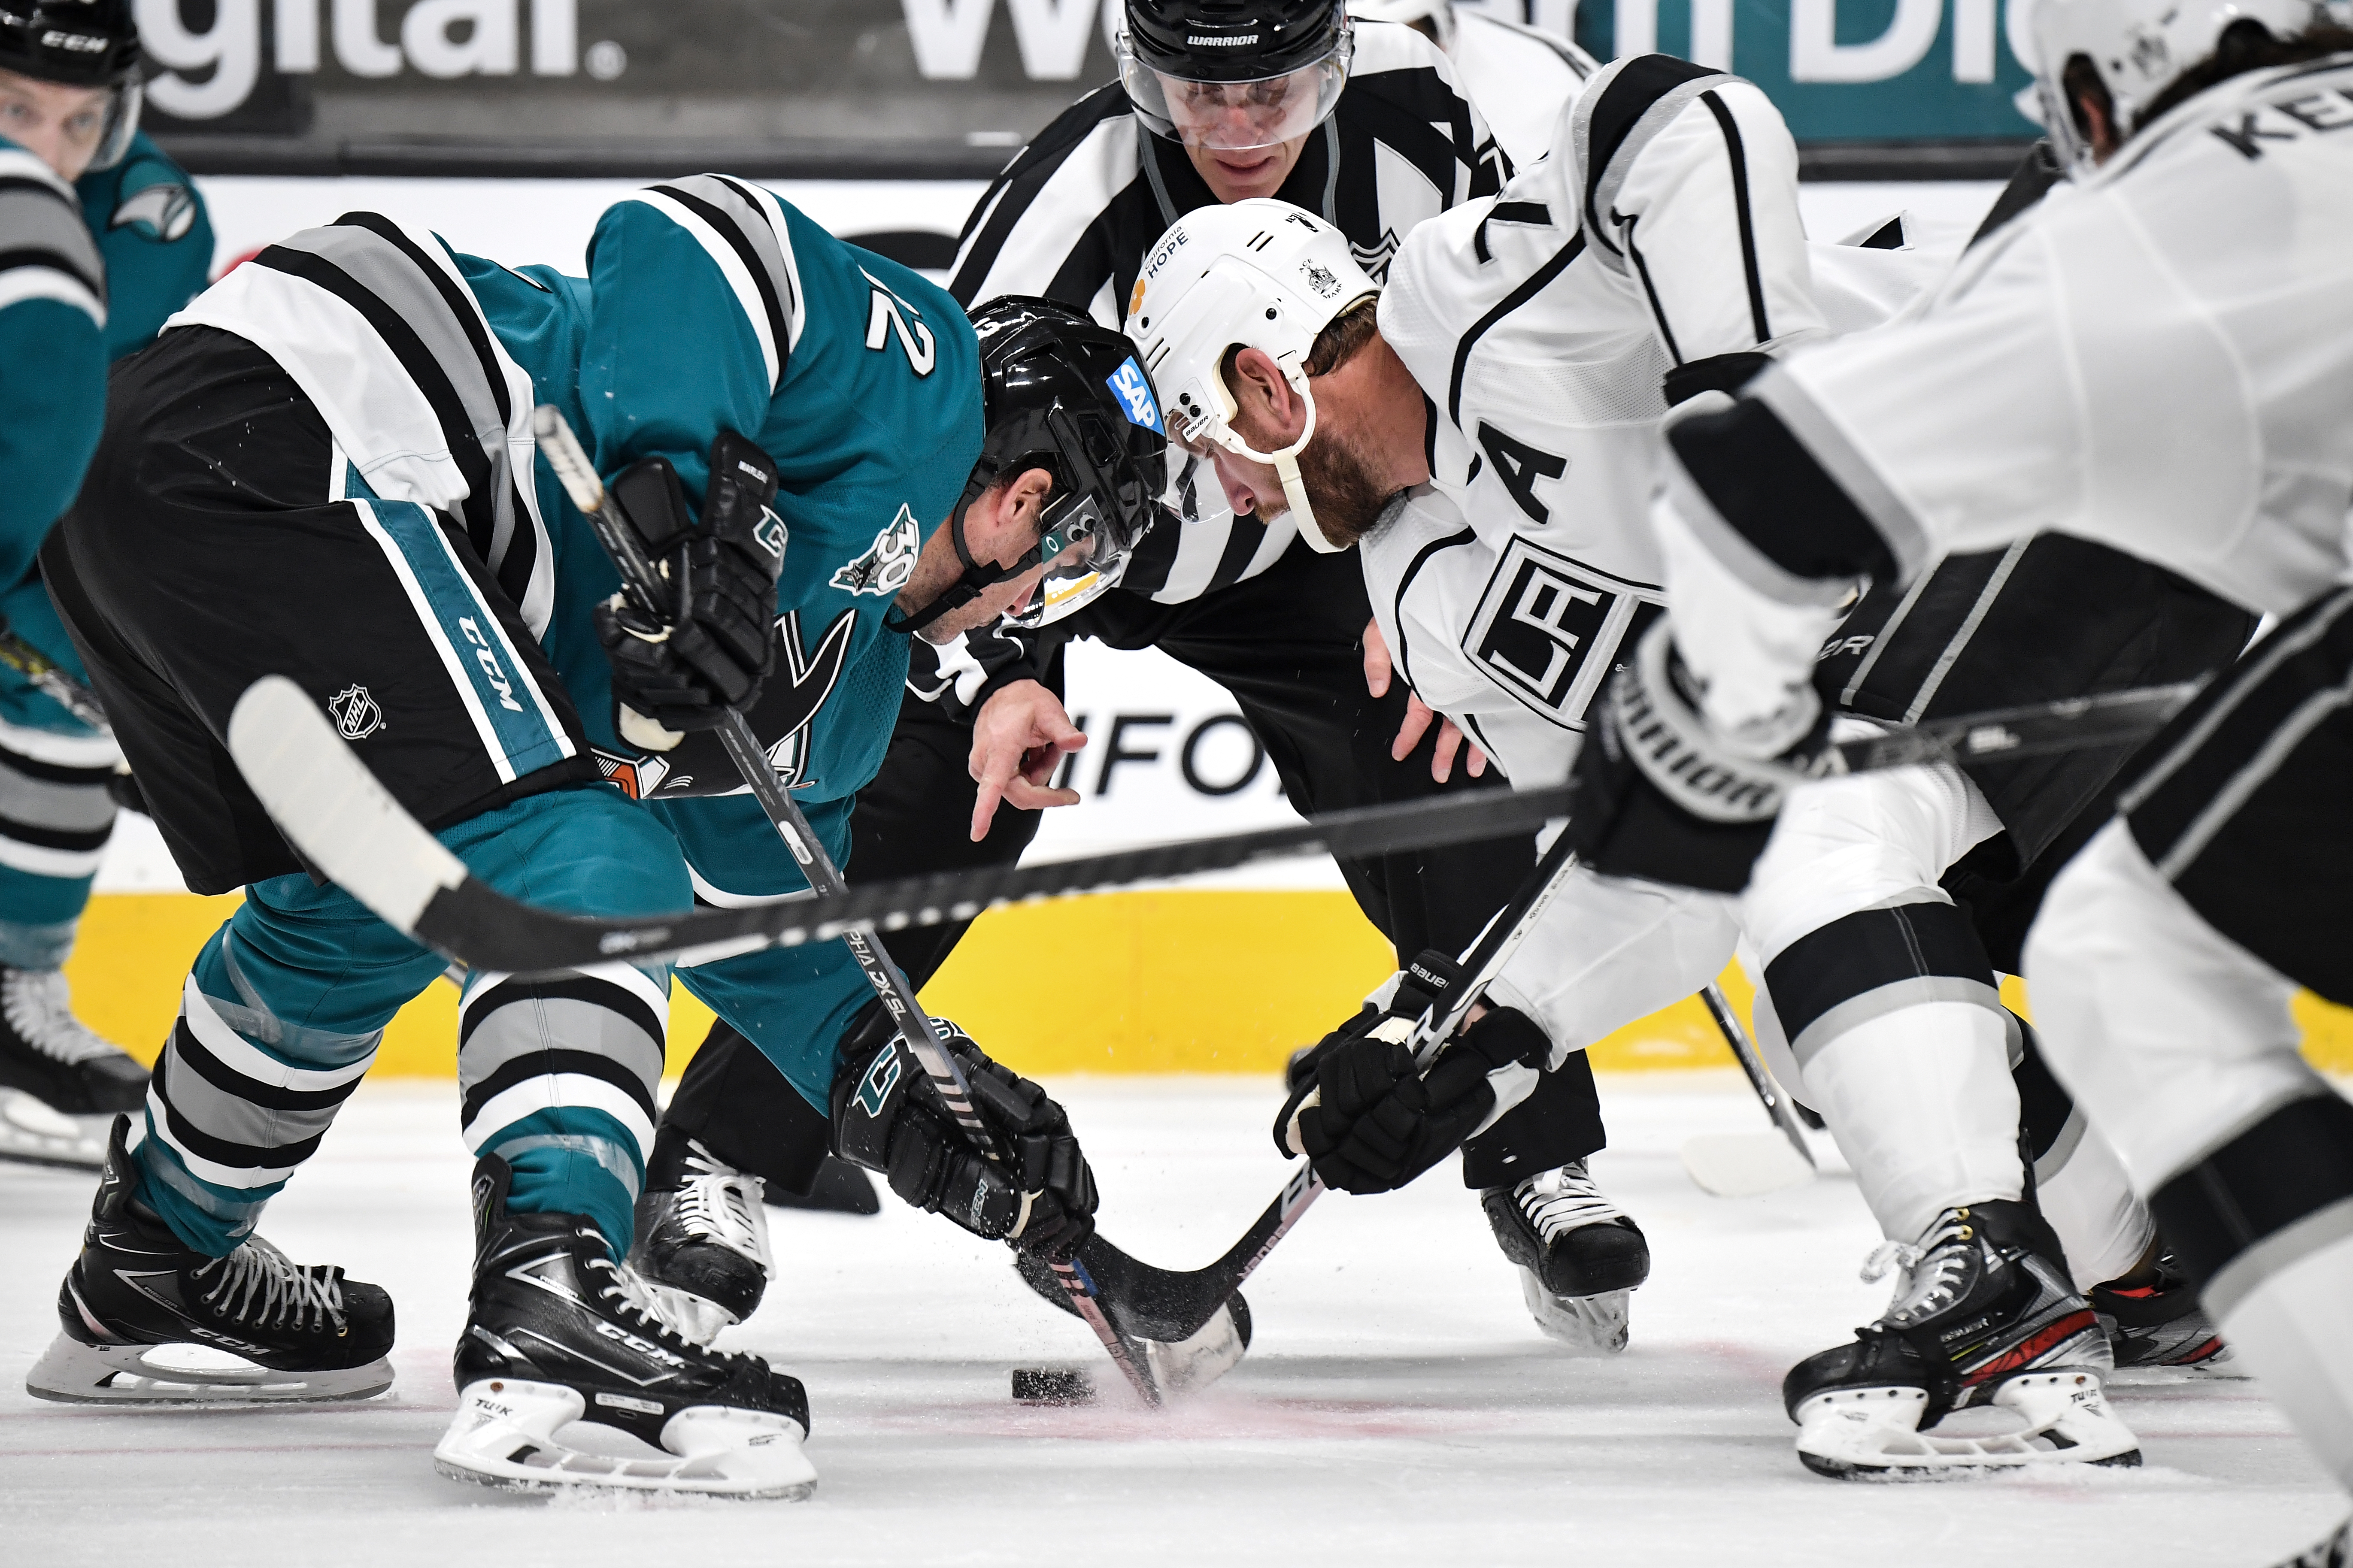 Patrick Marleau #12 of the San Jose Sharks takes a face-off against Jeff Carter #77 the Los Angeles Kings at SAP Center on April 9, 2021 in San Jose, California.